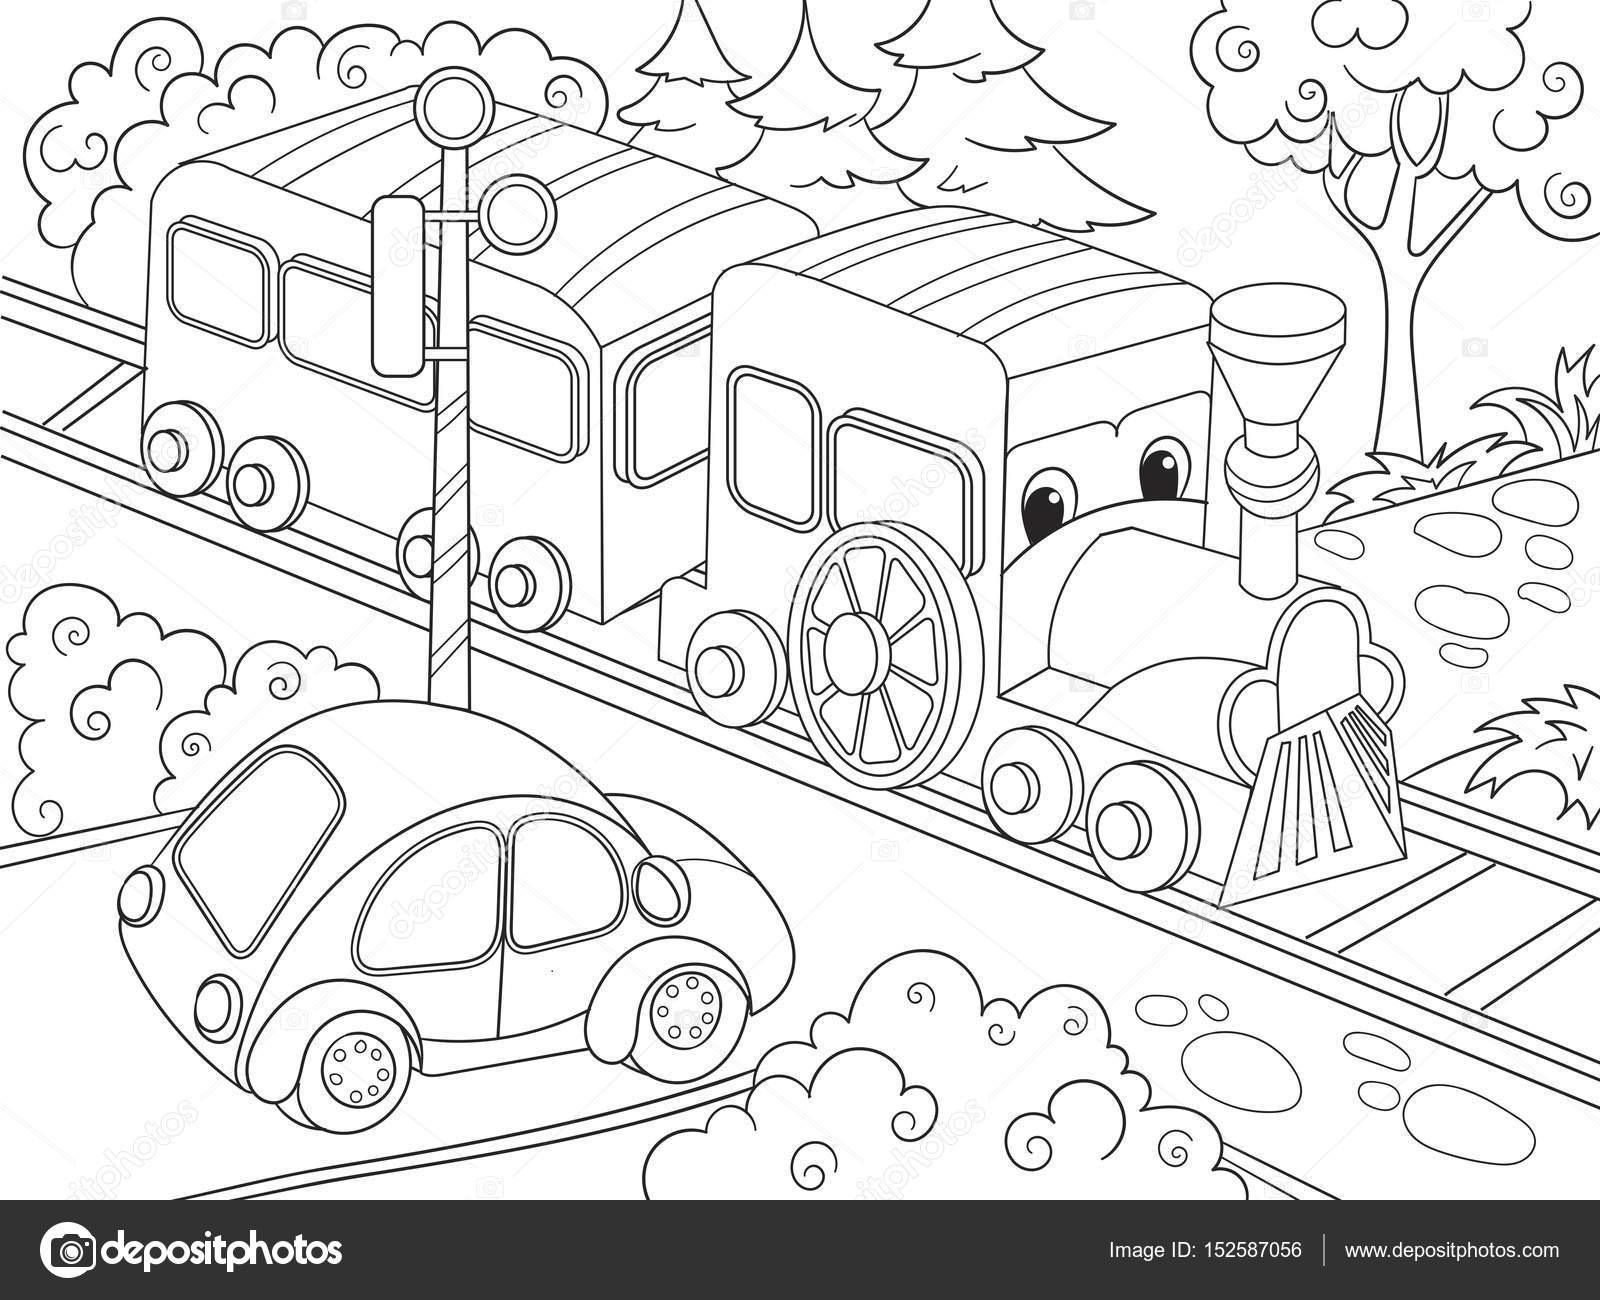 1600x1300 Cartoon Train Train And Car Coloring Book For Children Cartoon